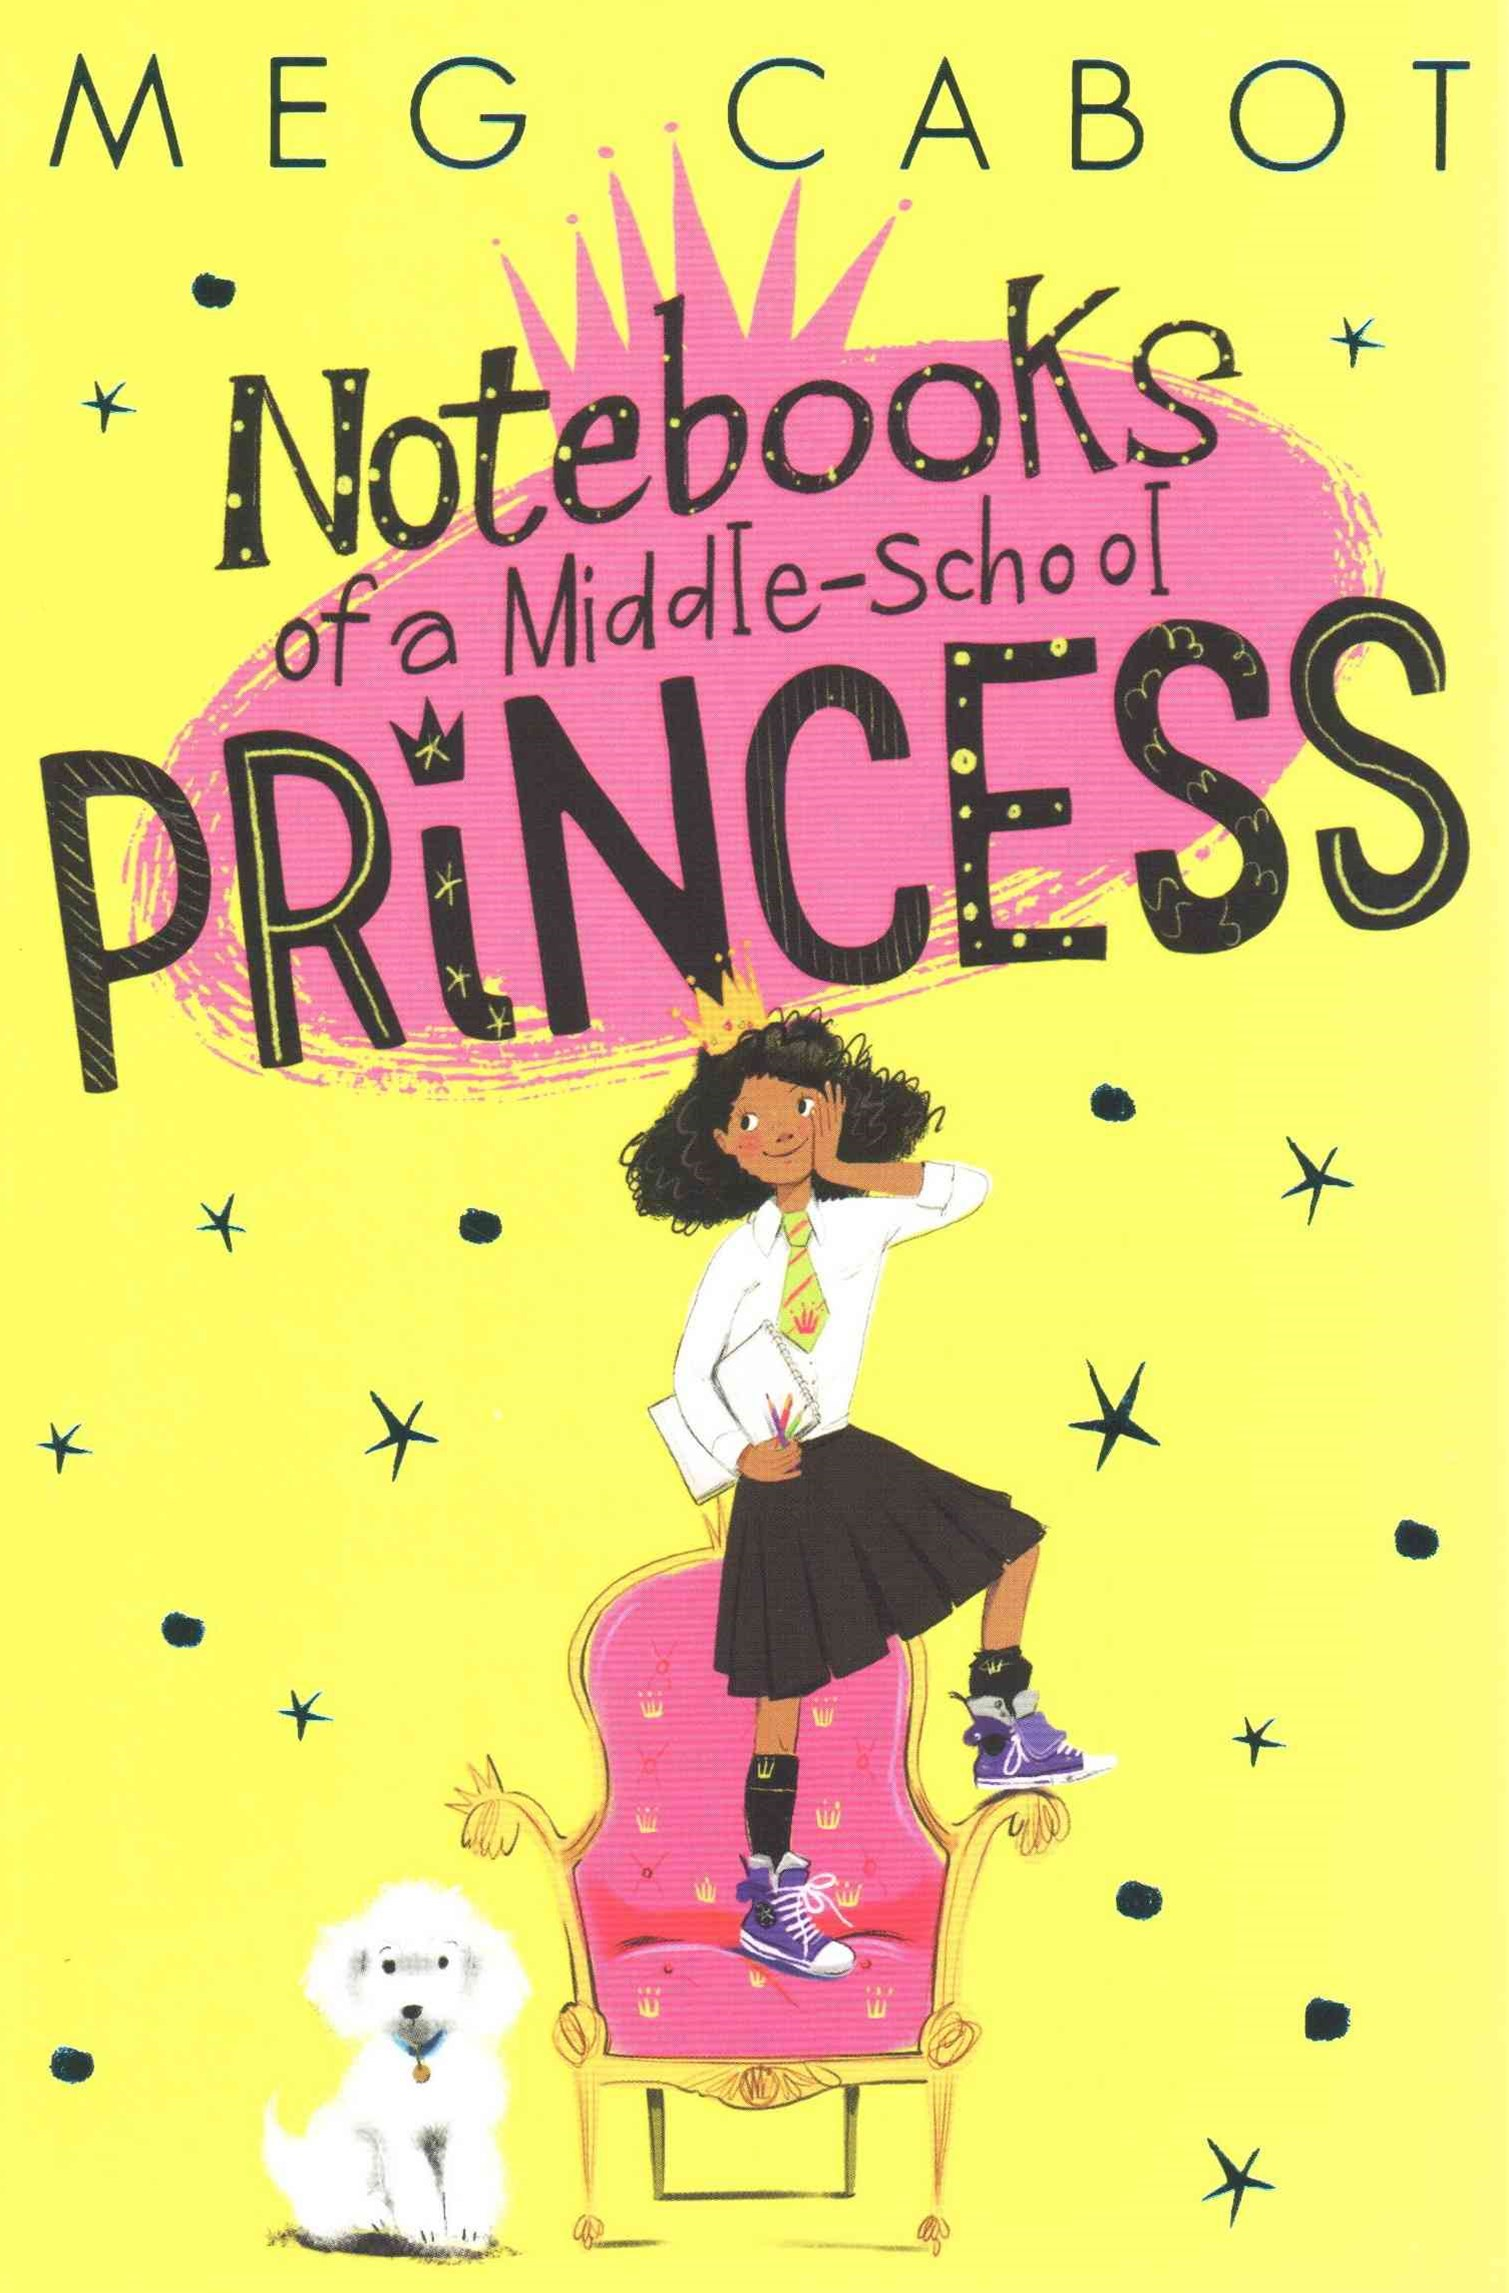 Notebooks of a Middle-School Princess: Book 1